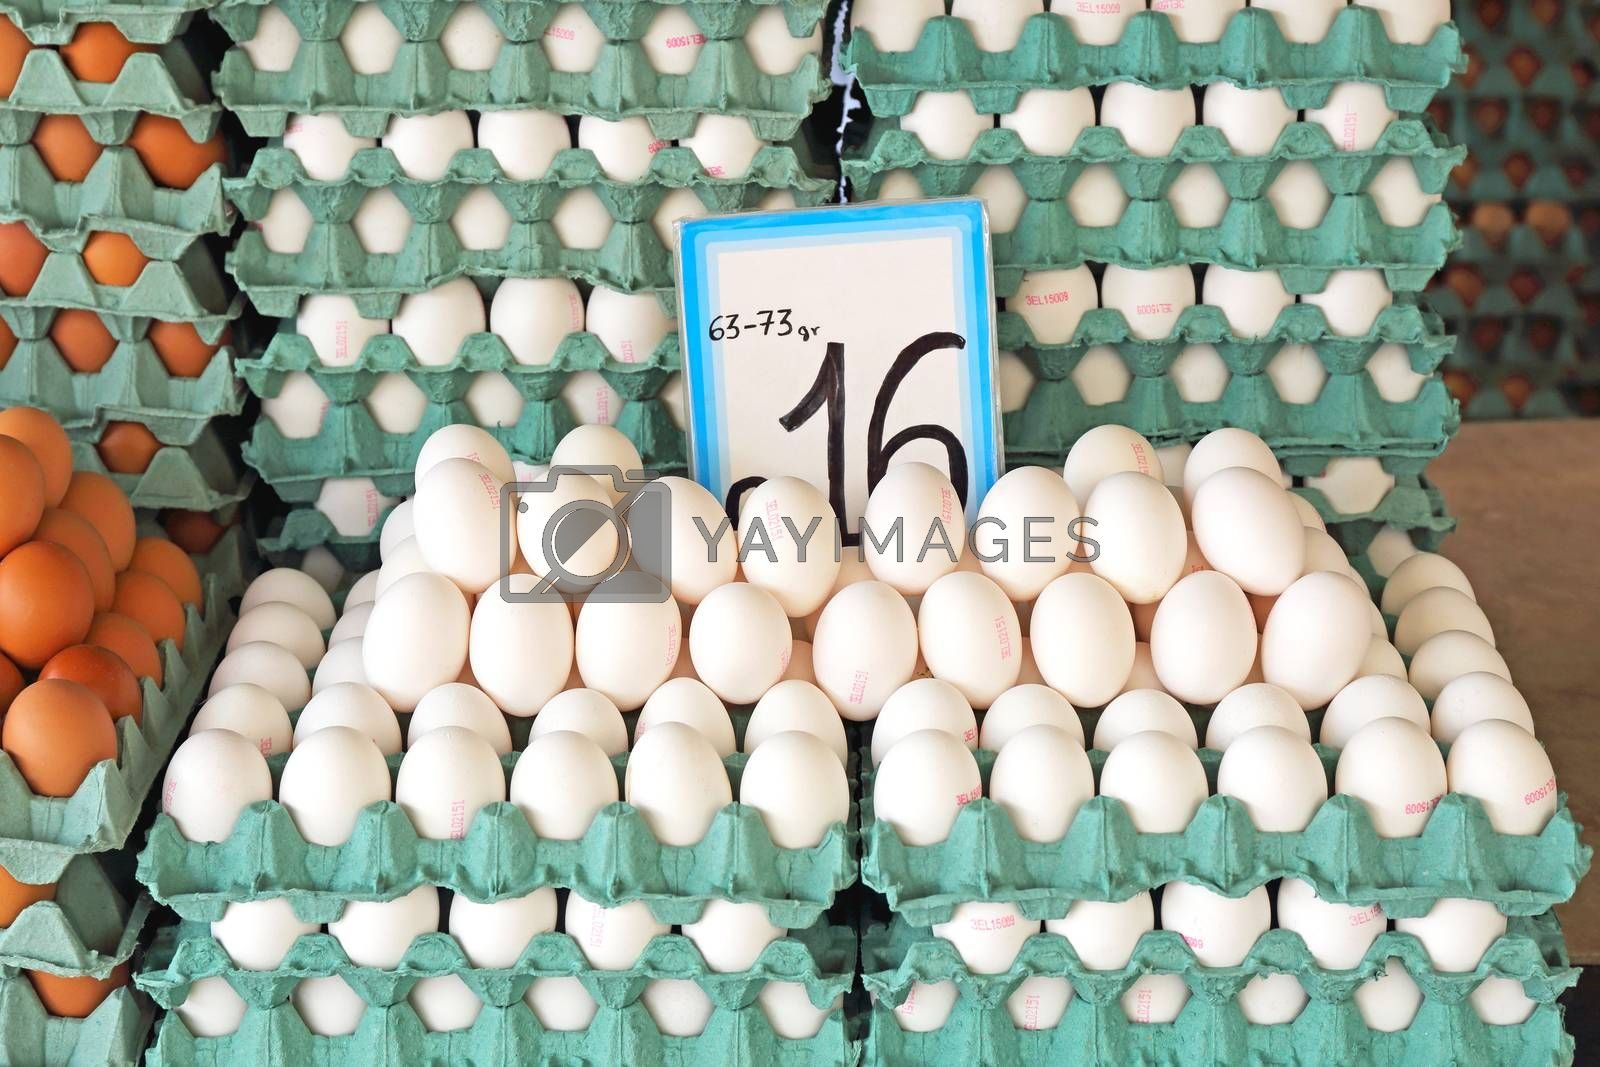 White Eggs For Sale at Farmers Market